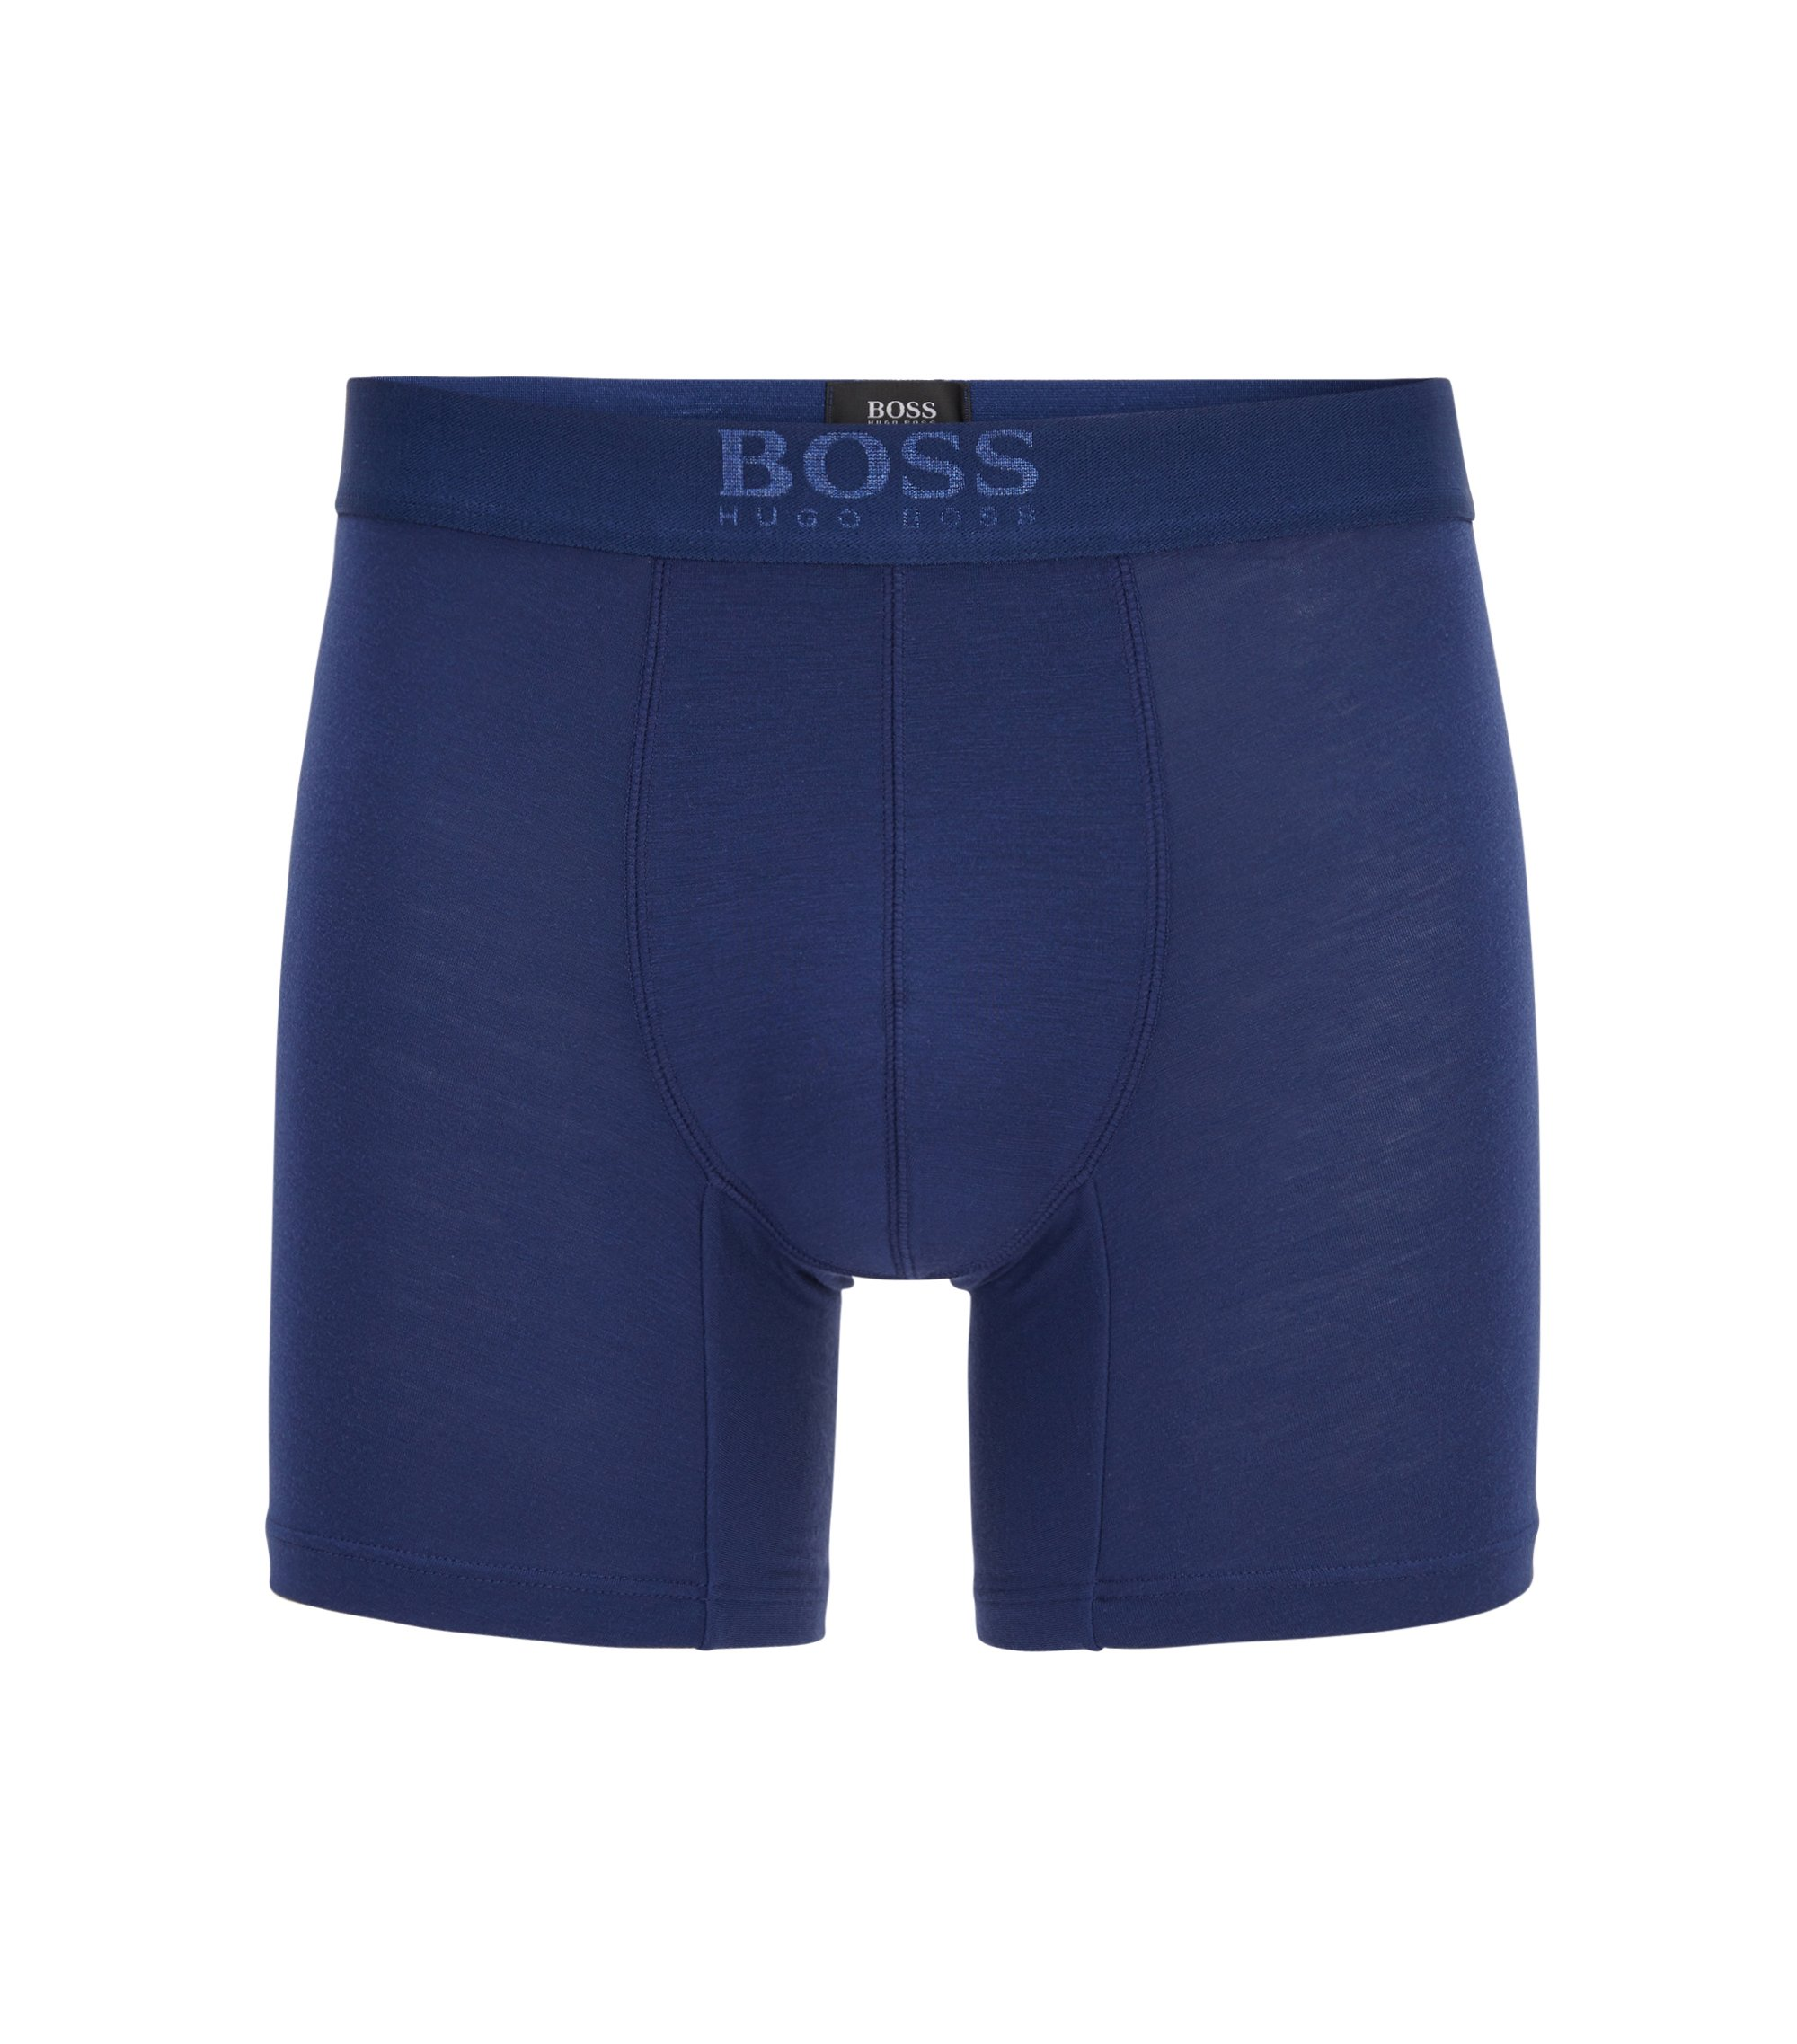 Stretch Modal Boxer Brief | Boxer Brief Modal, Blue